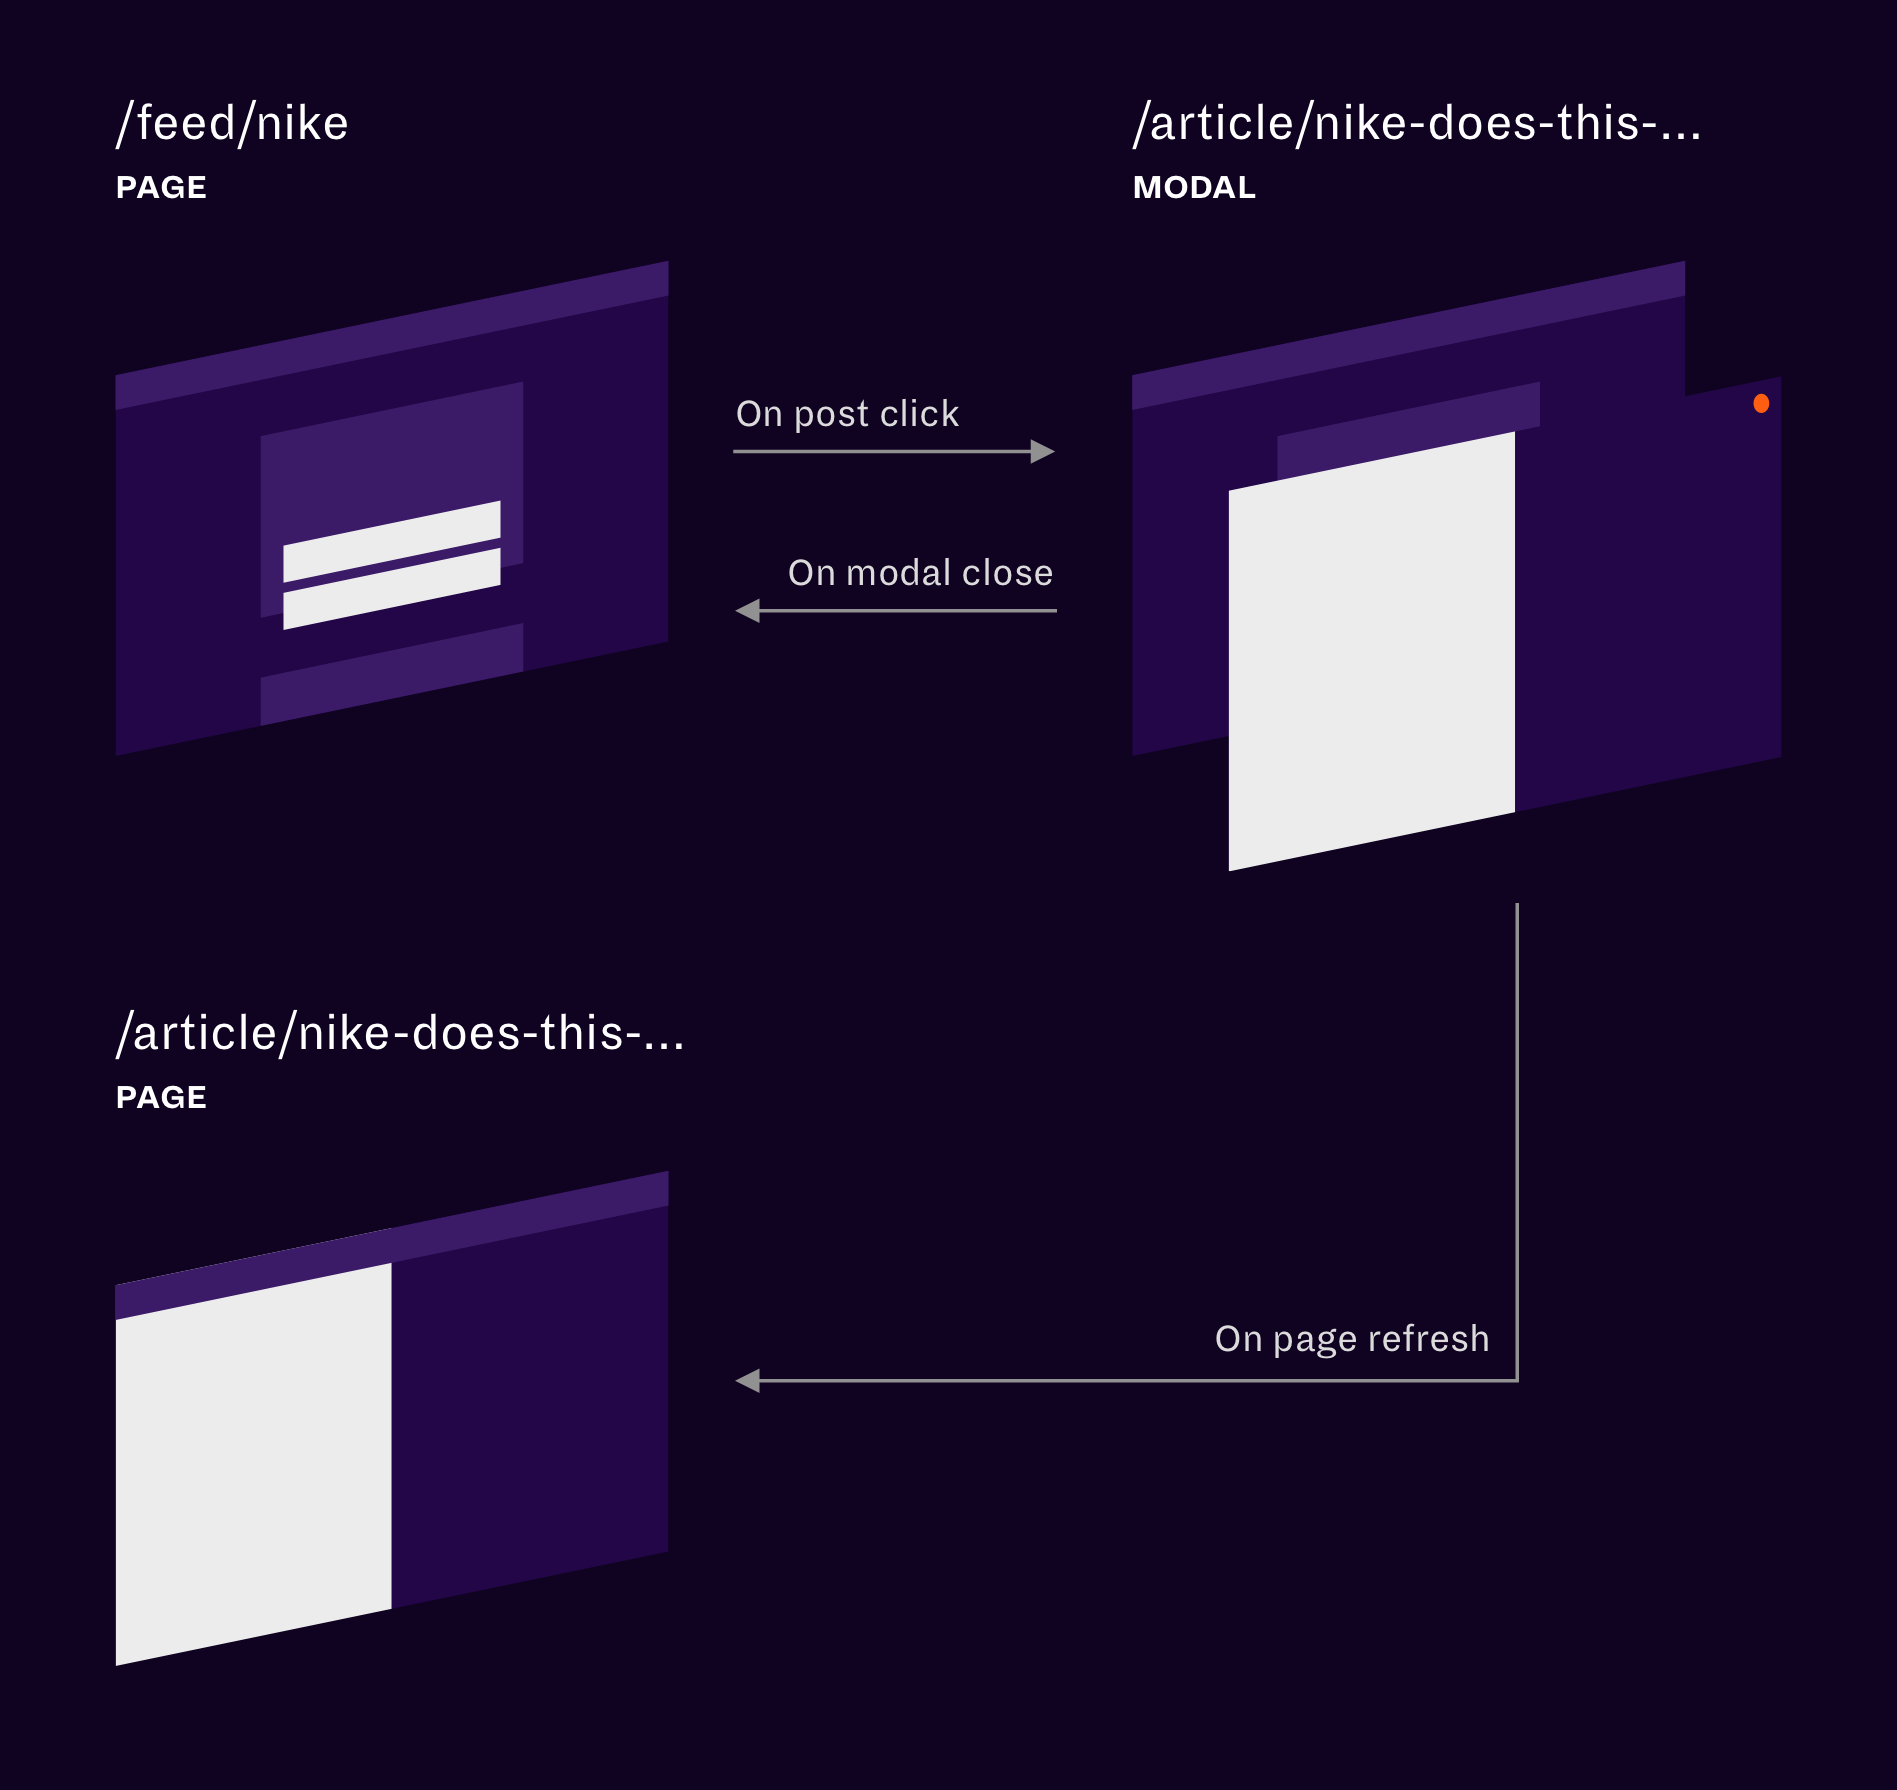 A diagram explaining the flow from a feed page to a shareable modal, and to a modal-page.